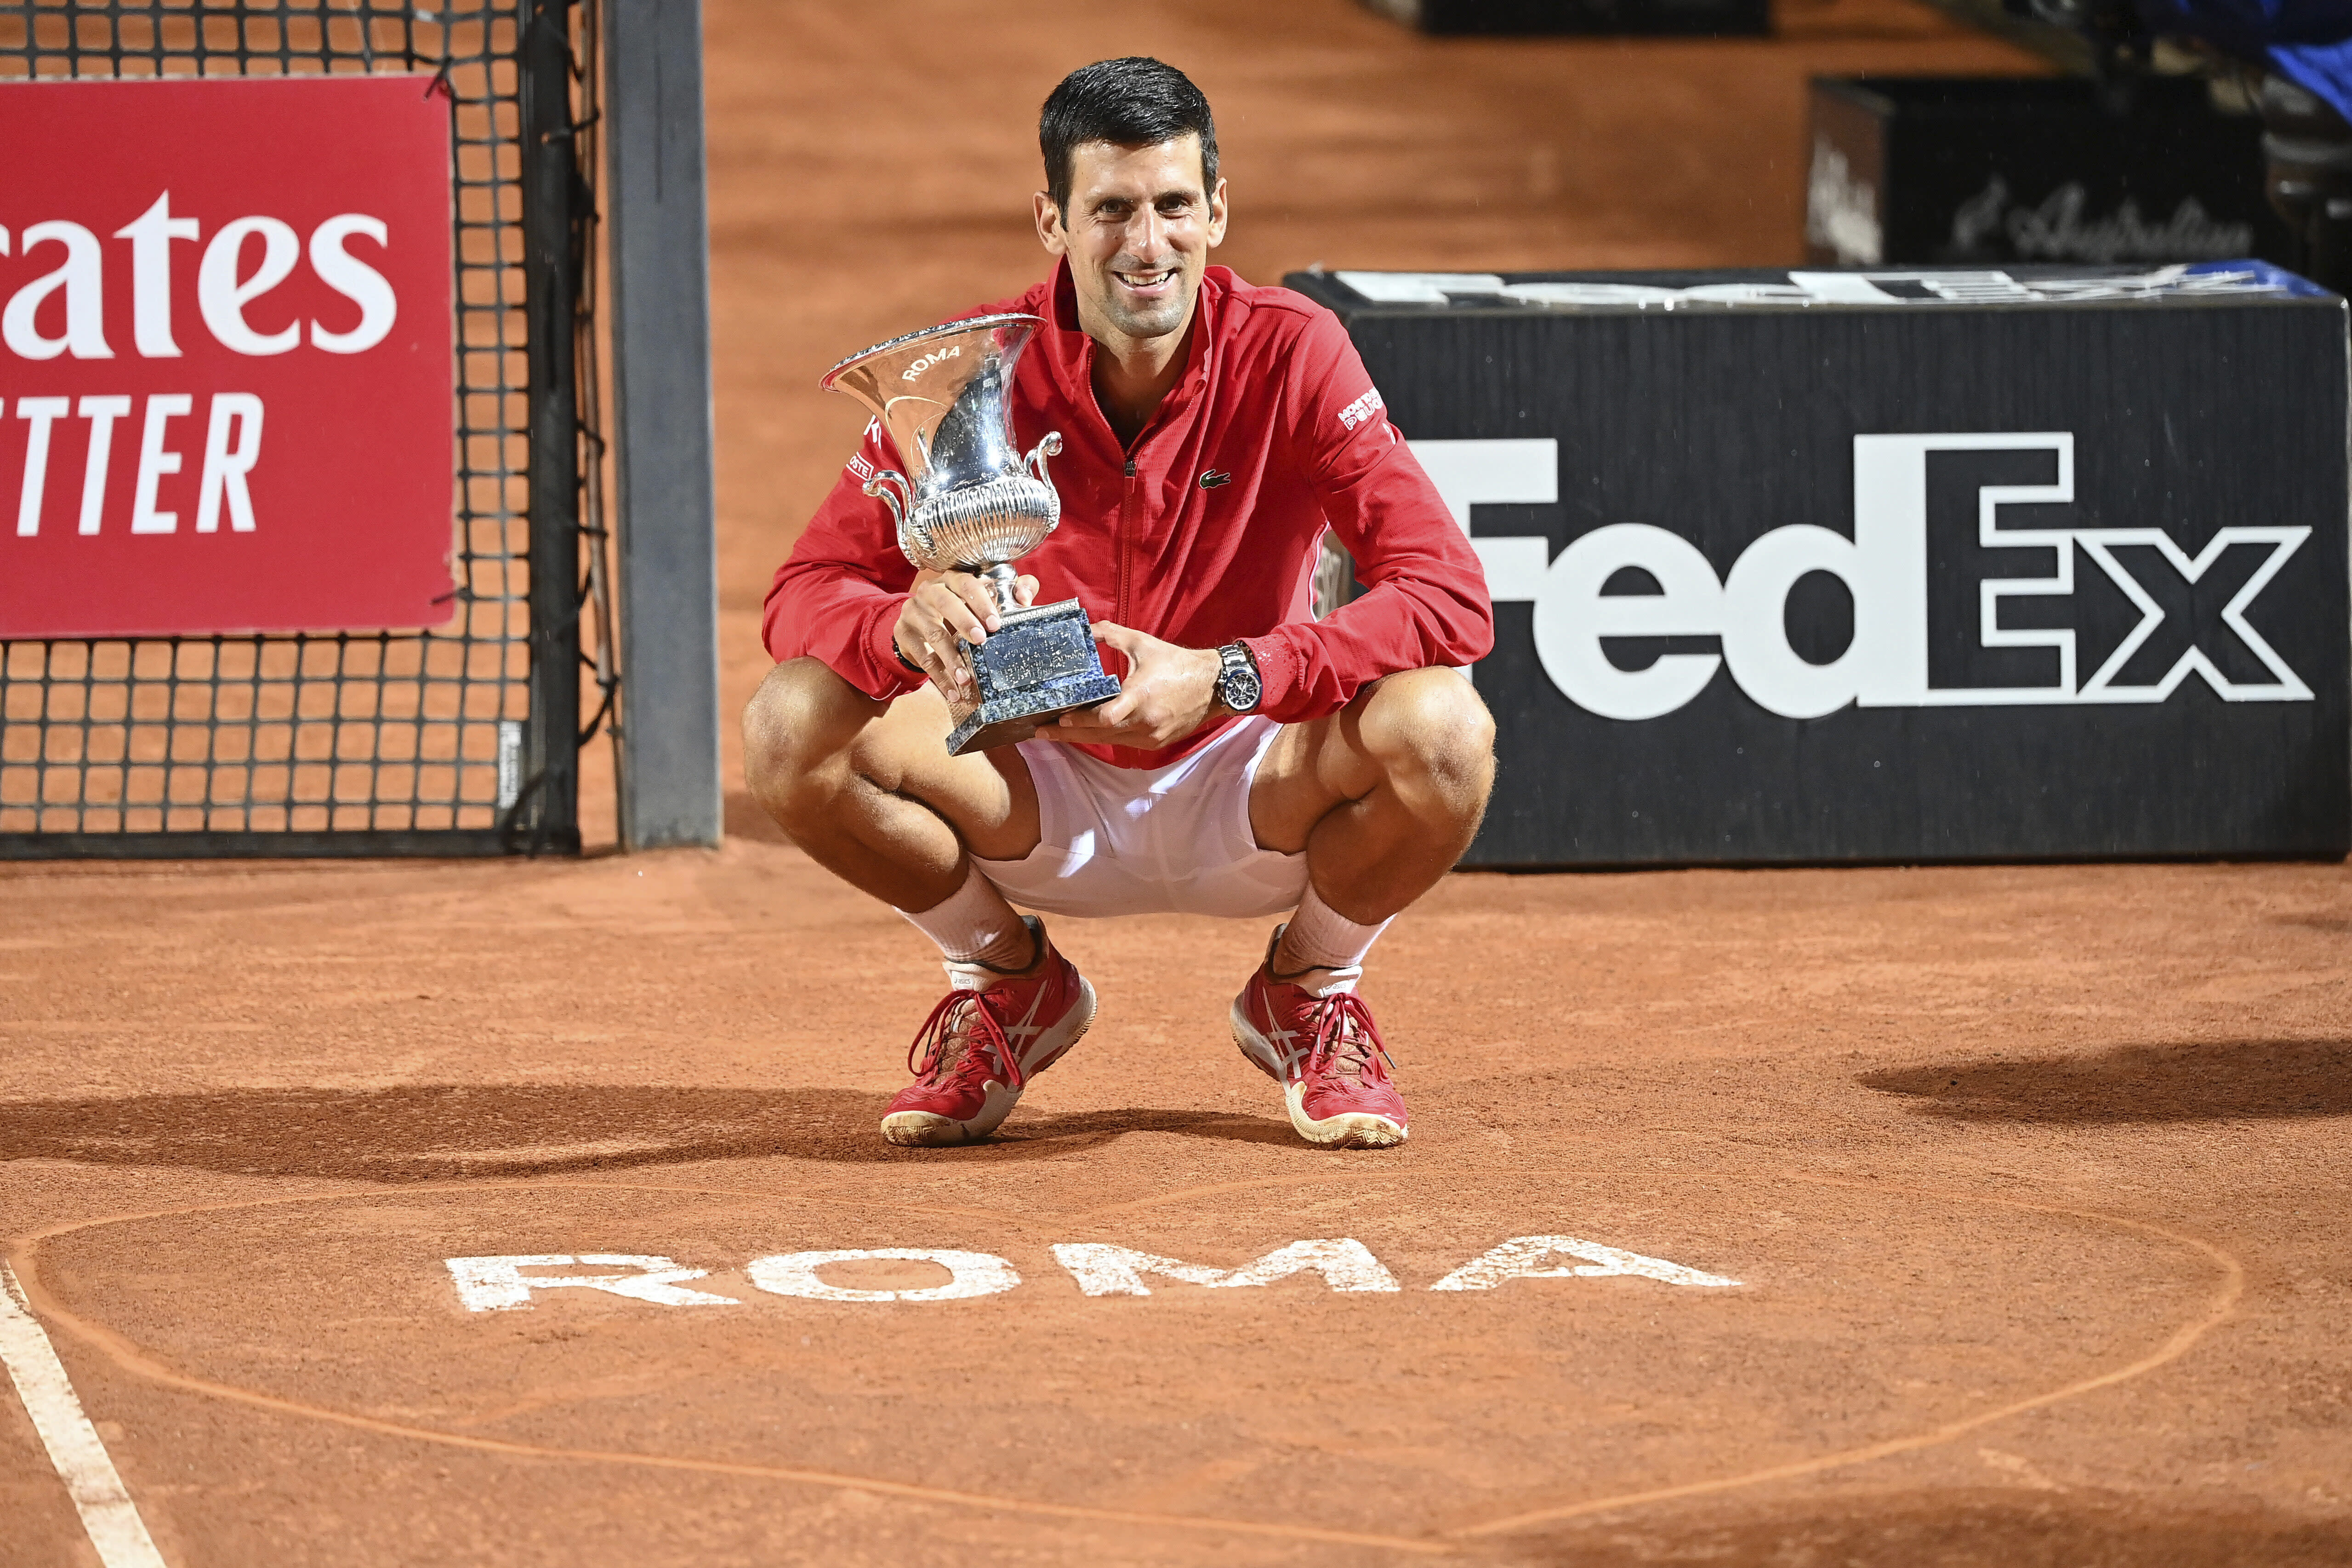 Serbia's Novak Đjoković poses with his trophy after winning winning his match with Argentina's Diego Sebastián Schwartzman during their final match at the Italian Open tennis tournament, in Rome, Monday, Sept. 21, 2020. (Alfredo Falcone/LaPresse via AP)